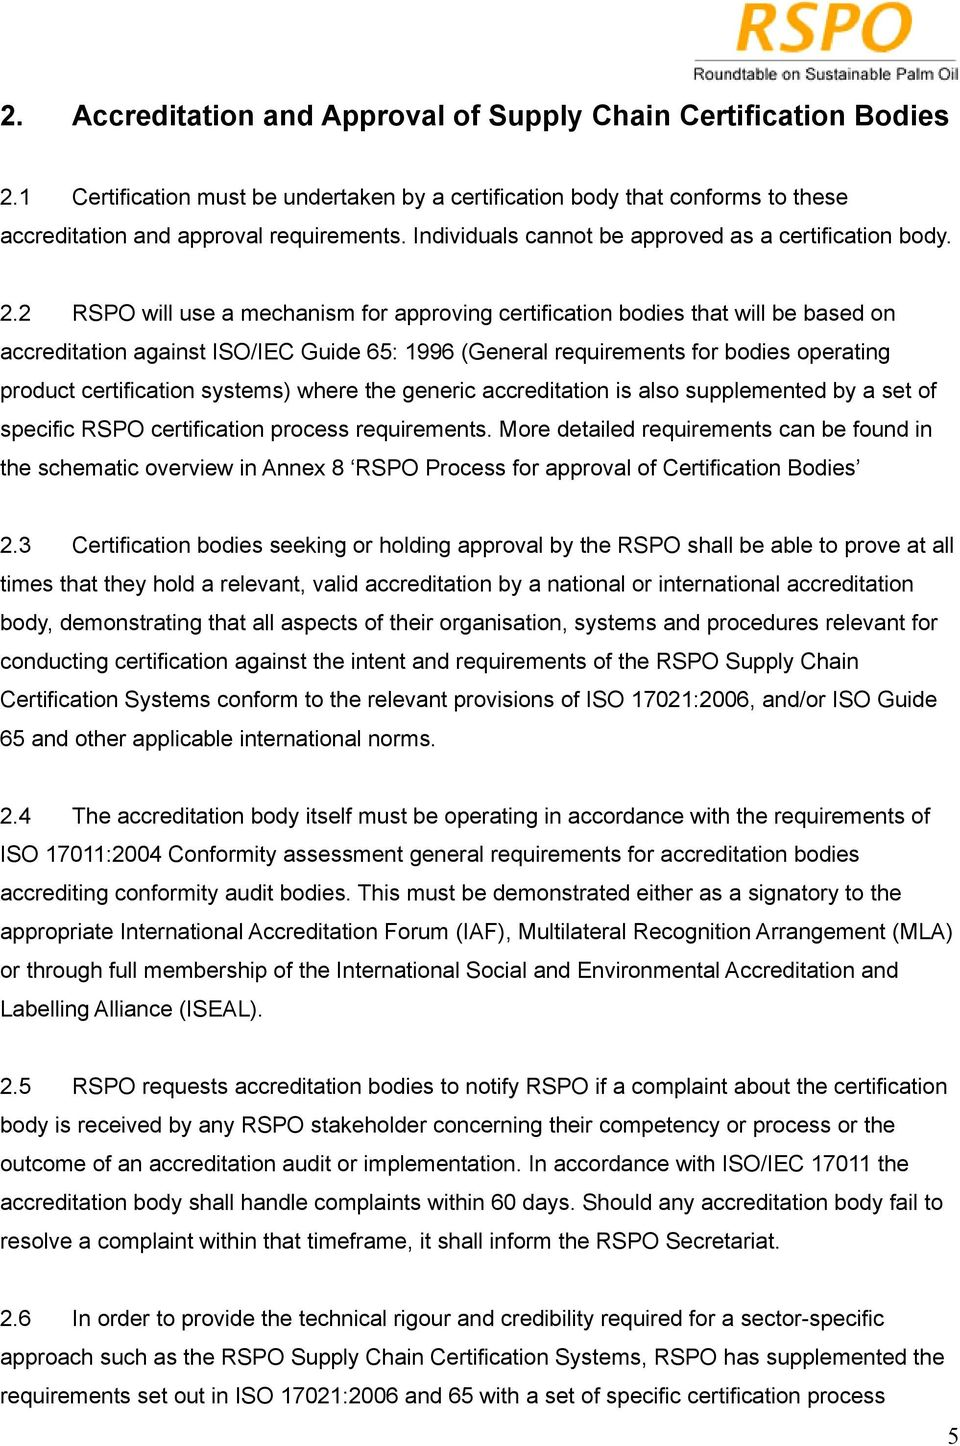 2 RSPO will use a mechanism for approving certification bodies that will be based on accreditation against ISO/IEC Guide 65: 1996 (General requirements for bodies operating product certification